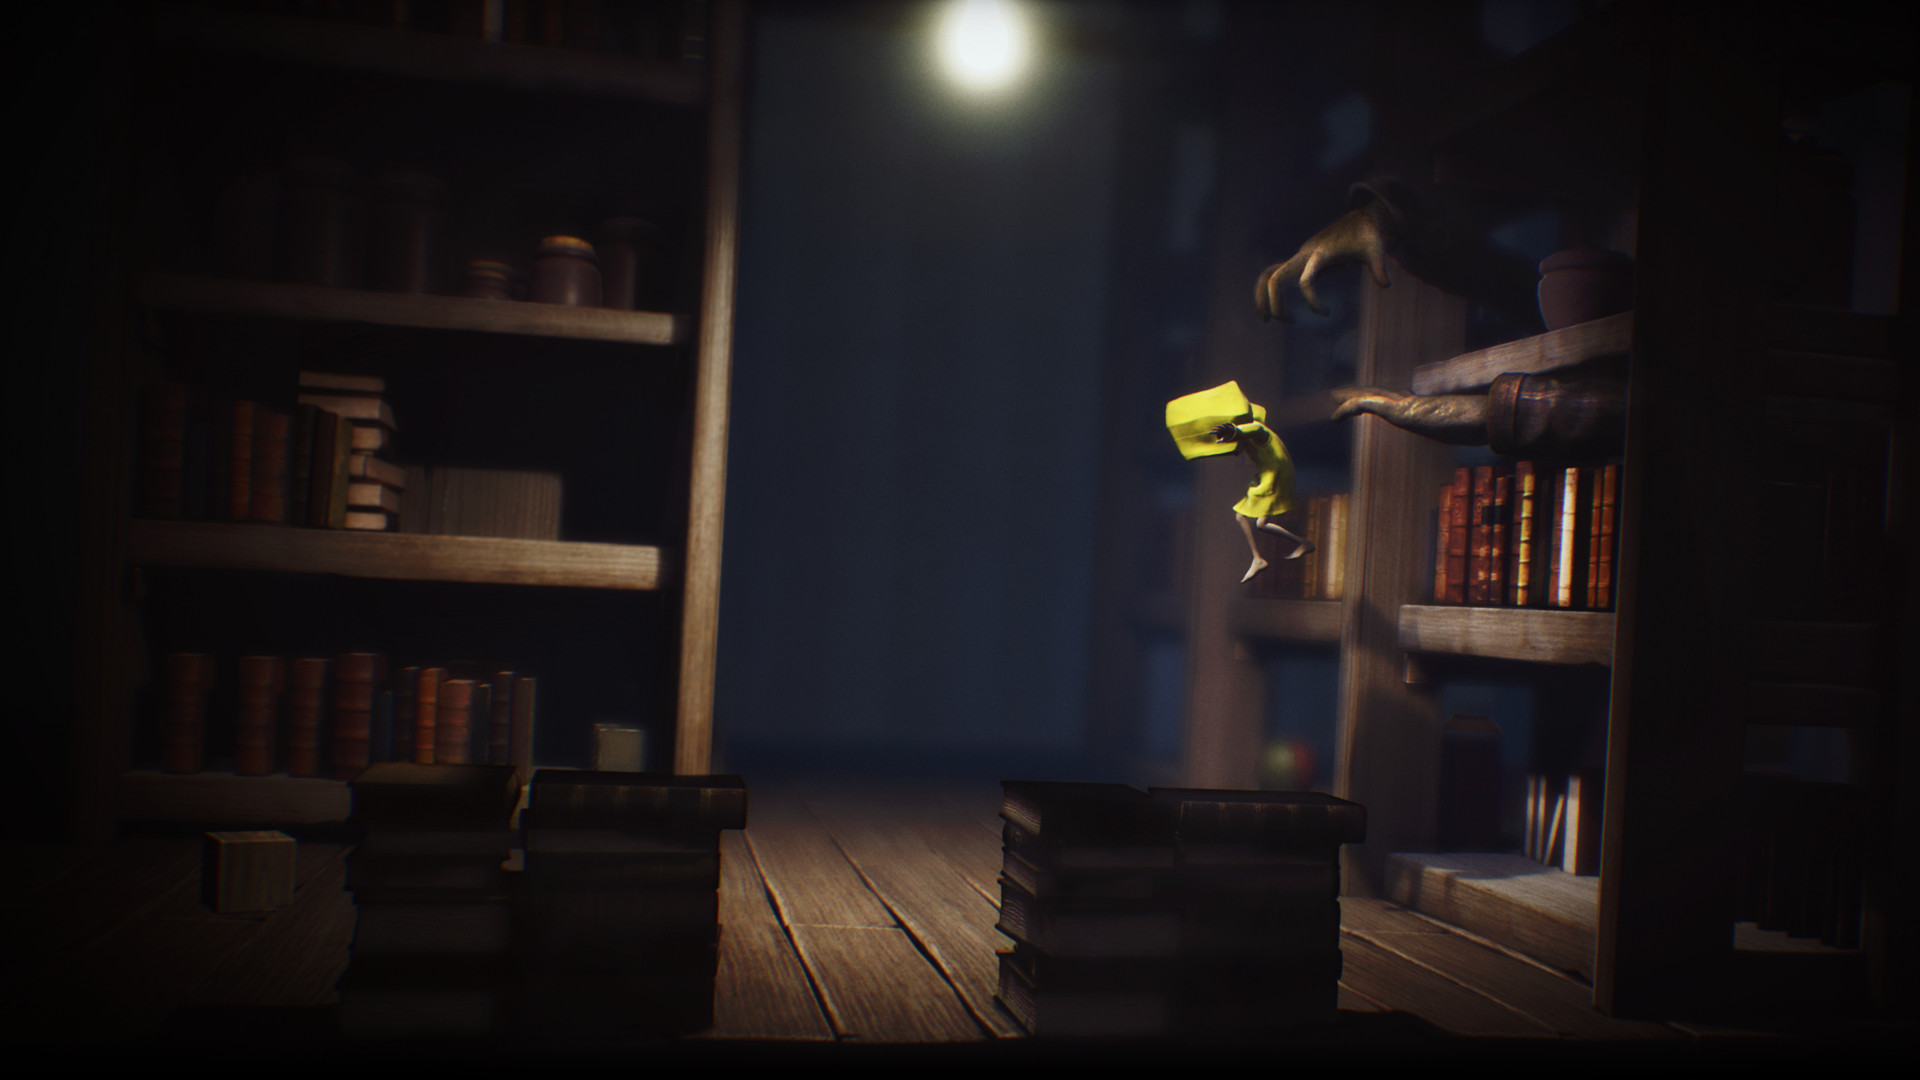 download little nightmares secrets of the maw chapter 1 repack - corepack singlelink iso rar part google drive direct link uptobox ftp link magnet torrent thepiratebay kickass alternative